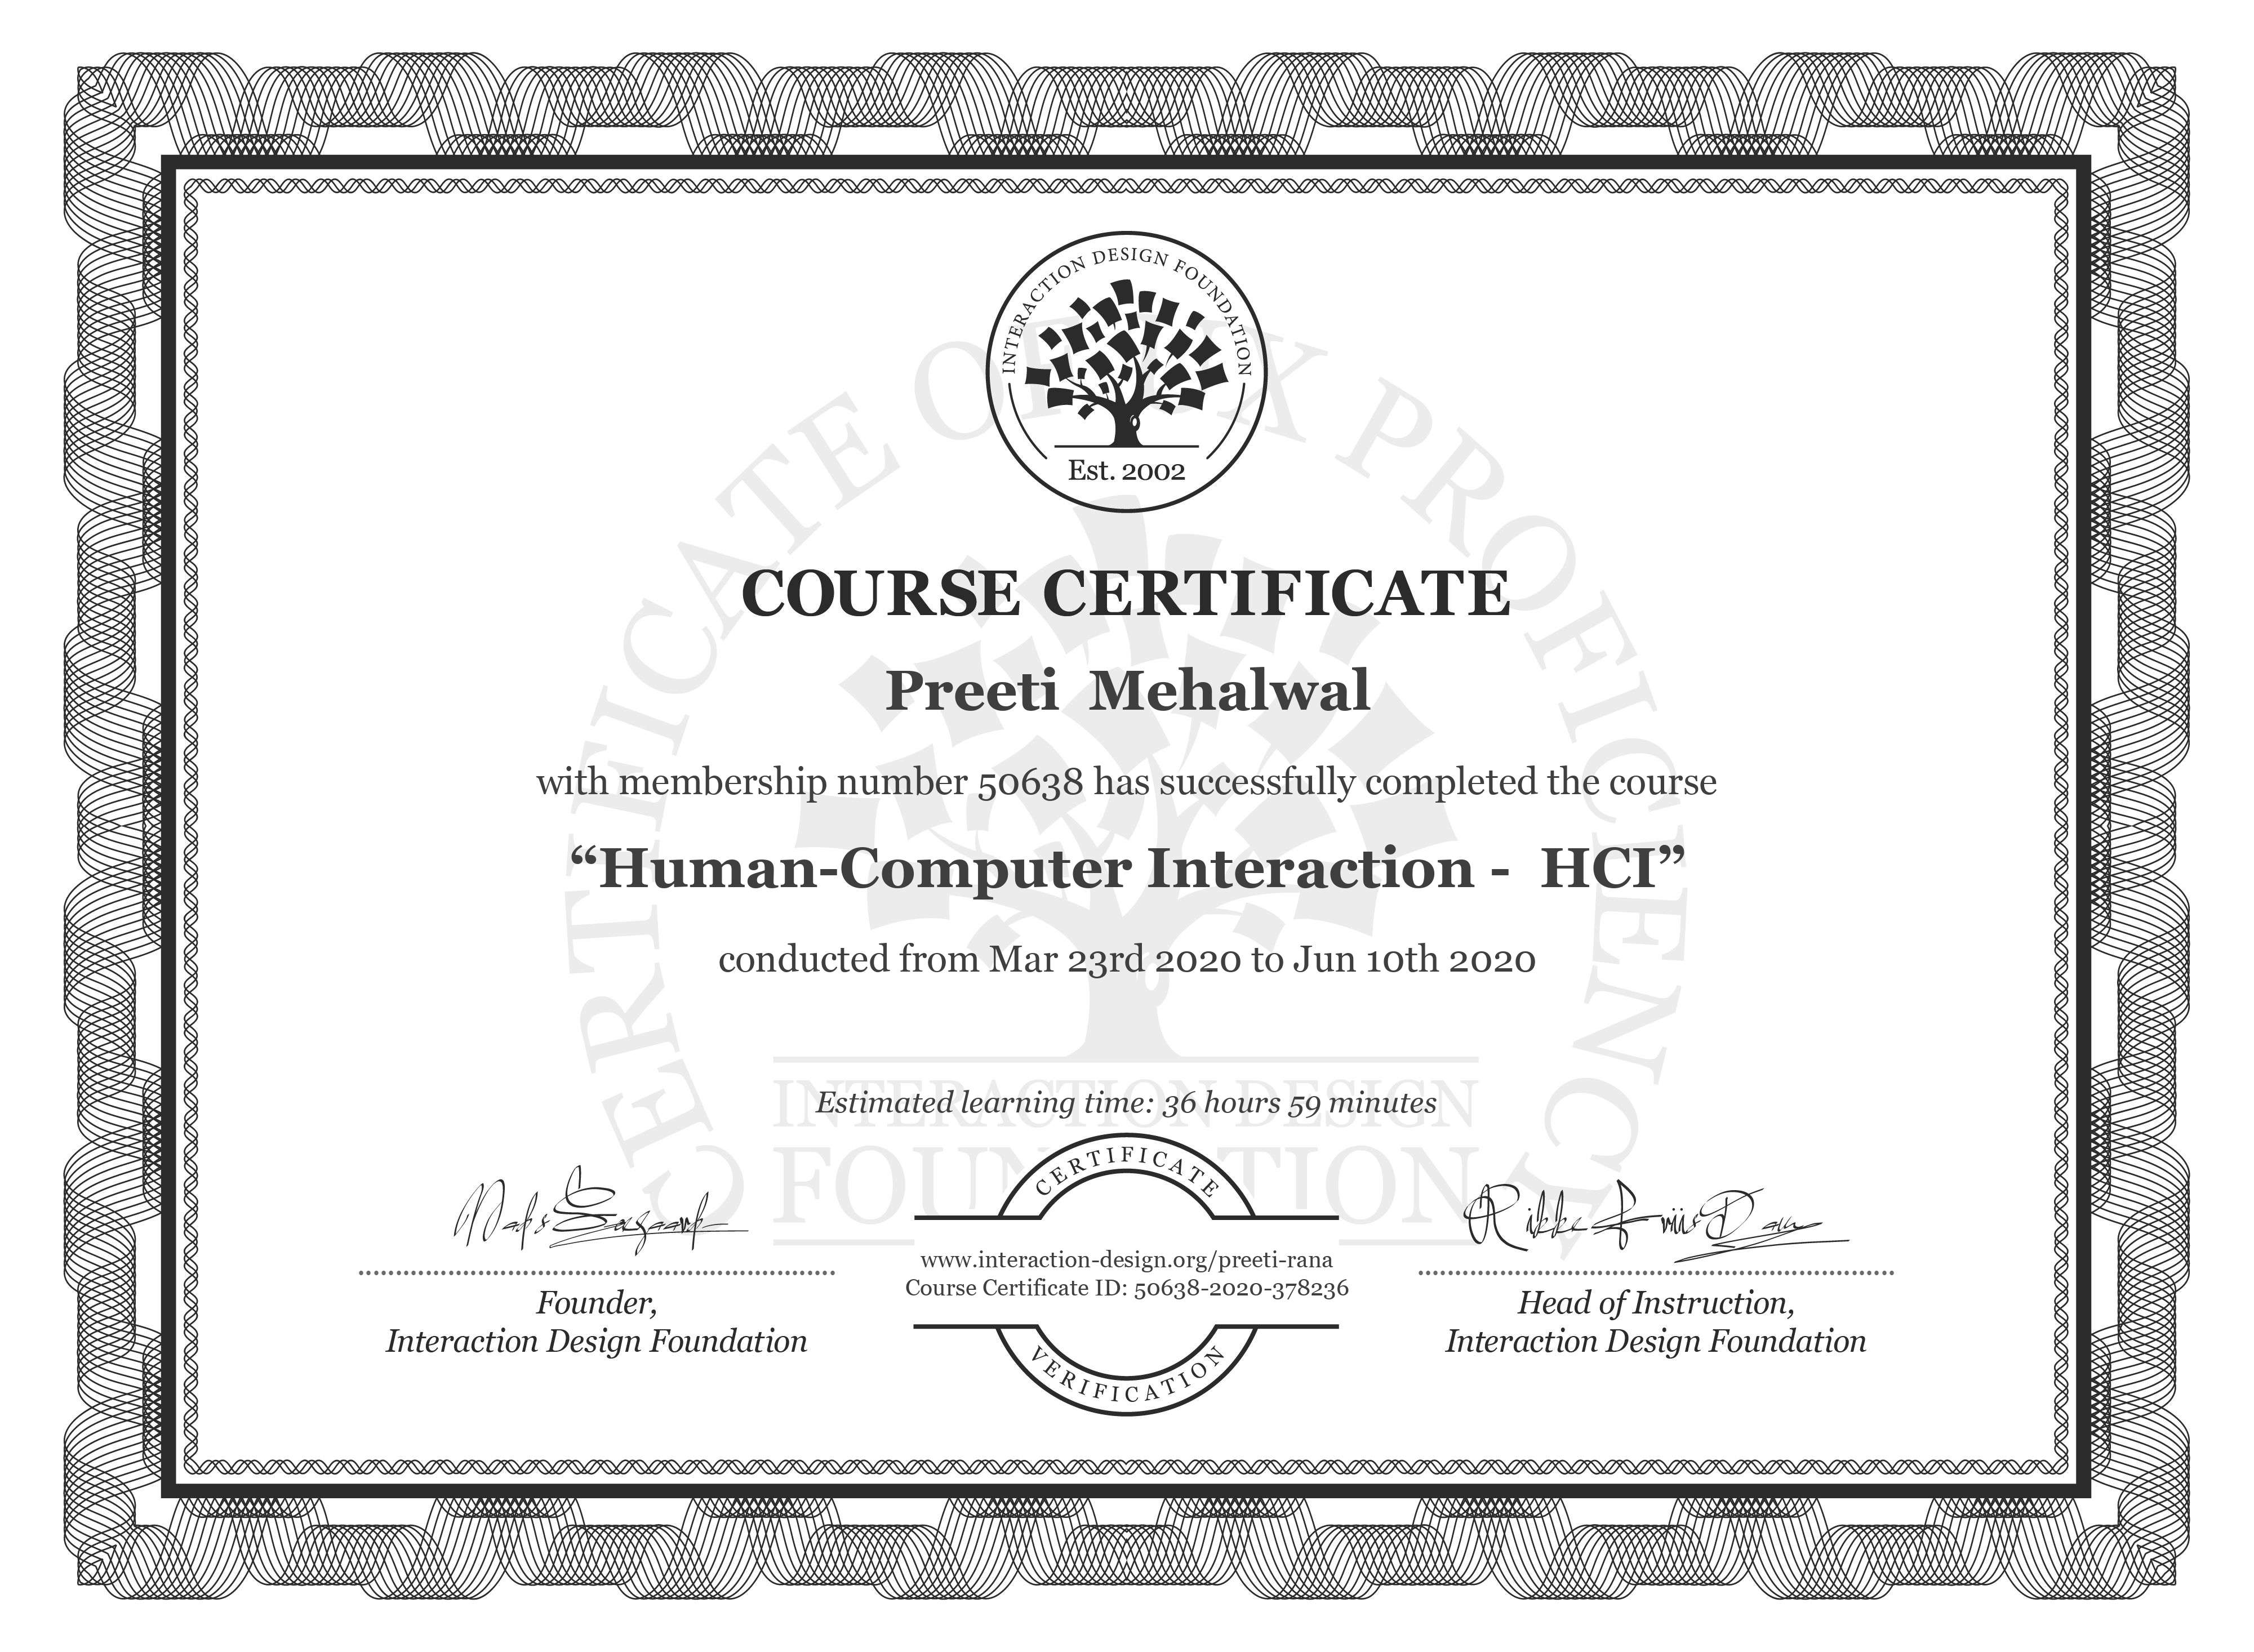 Preeti  Mehalwal's Course Certificate: Human-Computer Interaction -  HCI